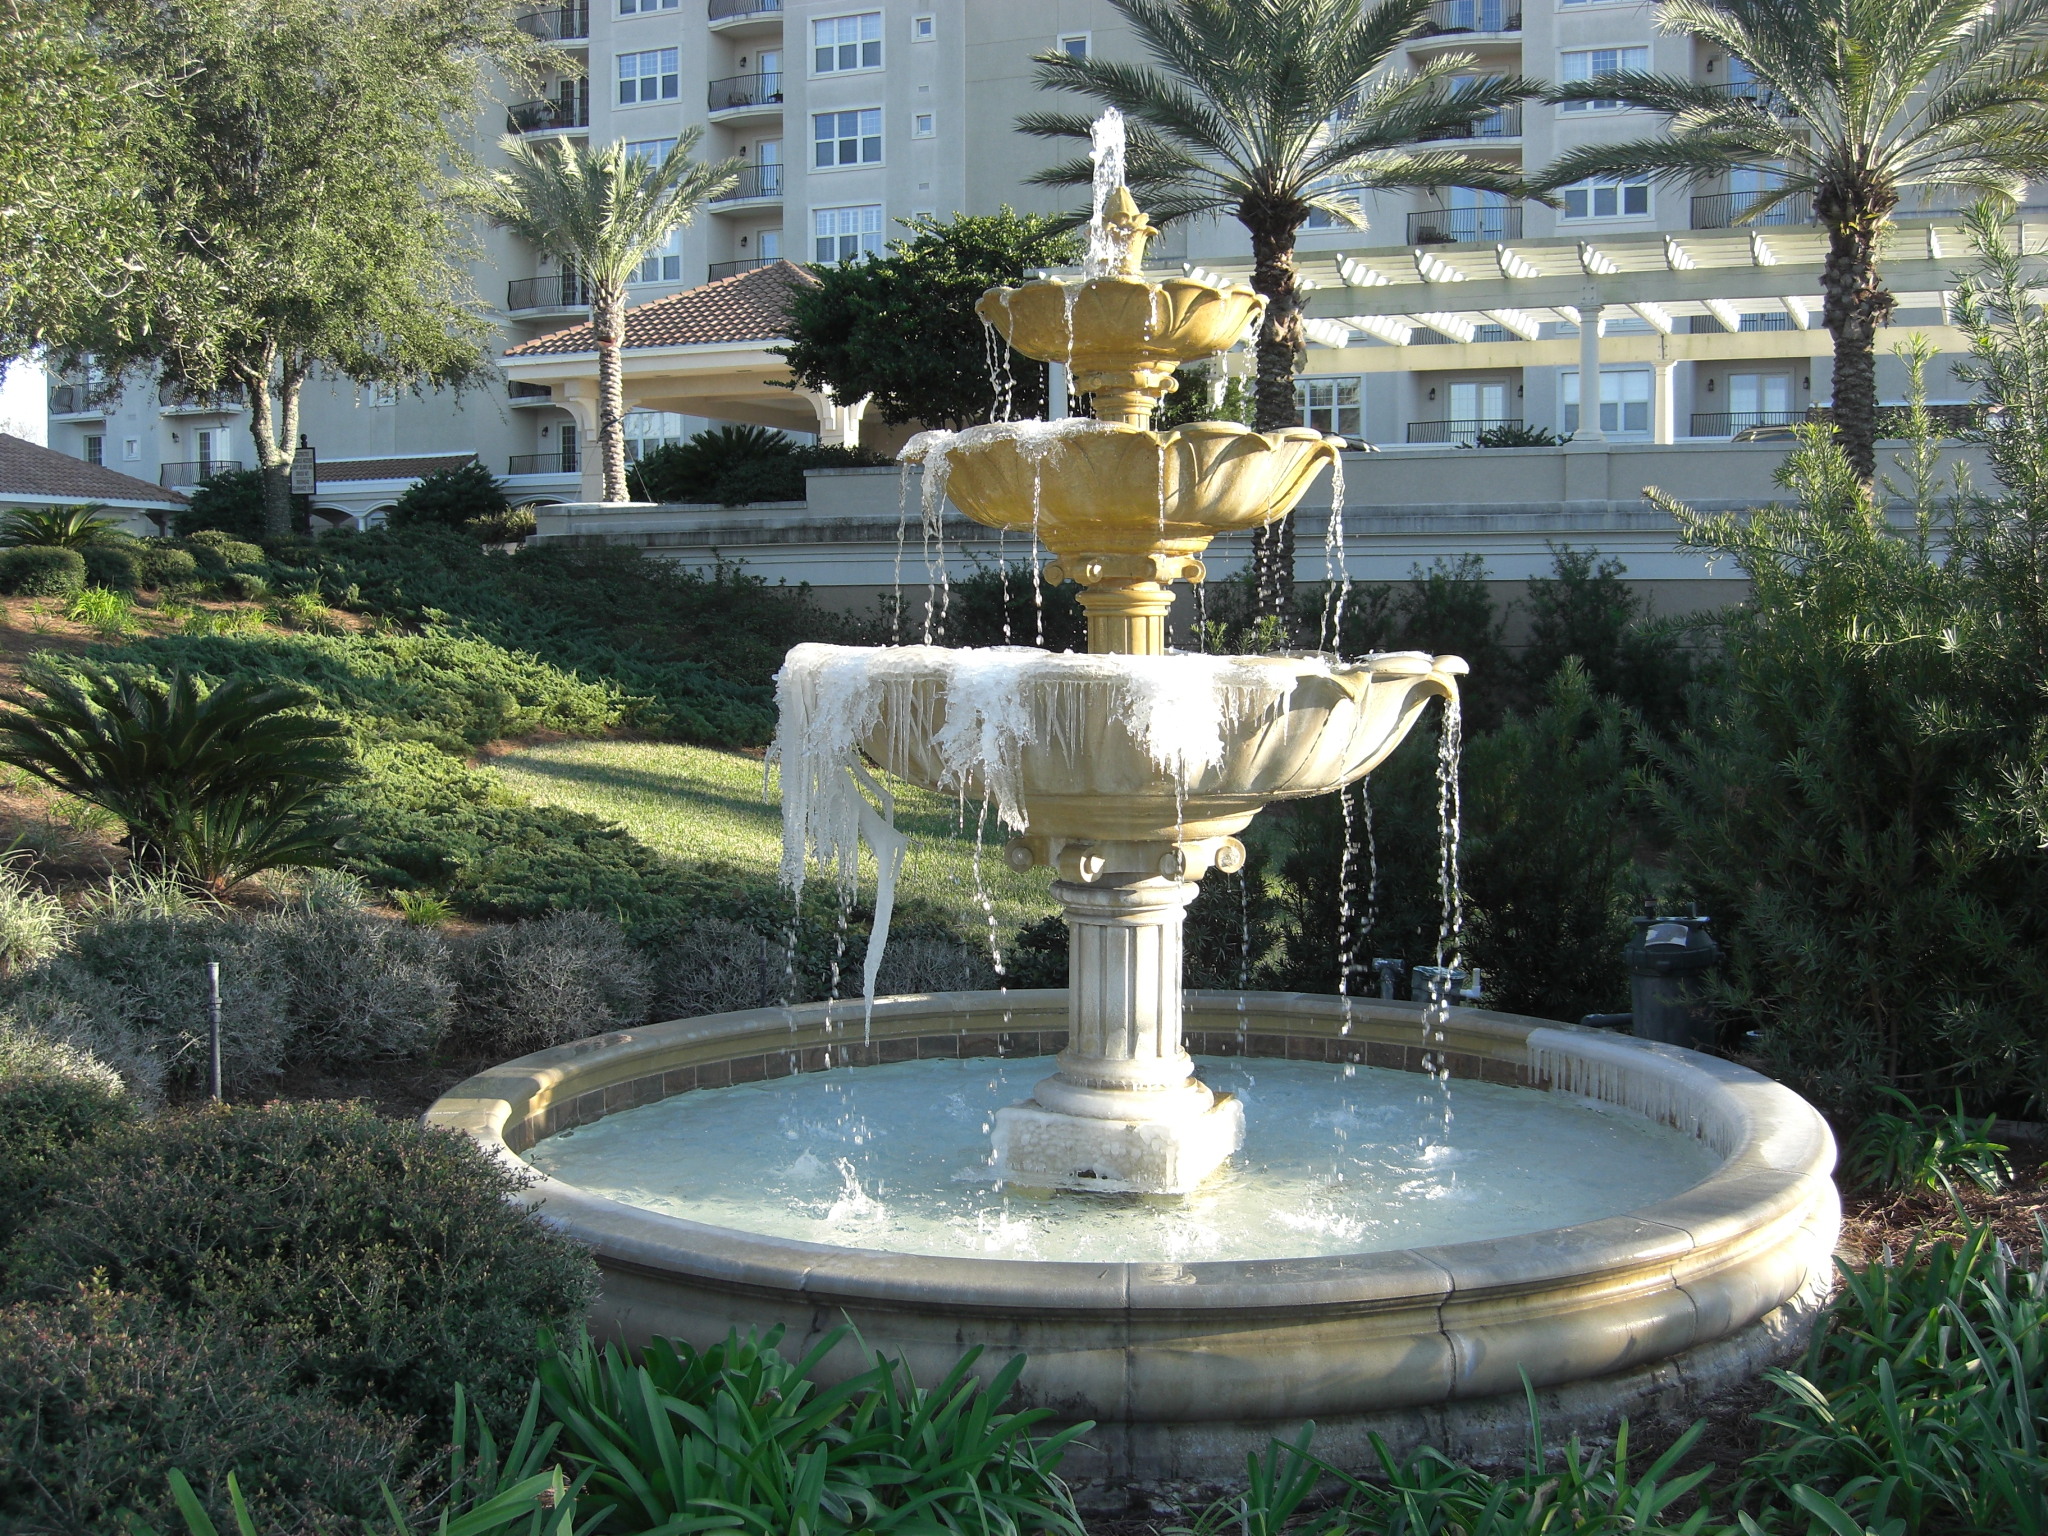 Fountain at the backyard of a hotel 4244617 2048x1536 for Backyard fountains